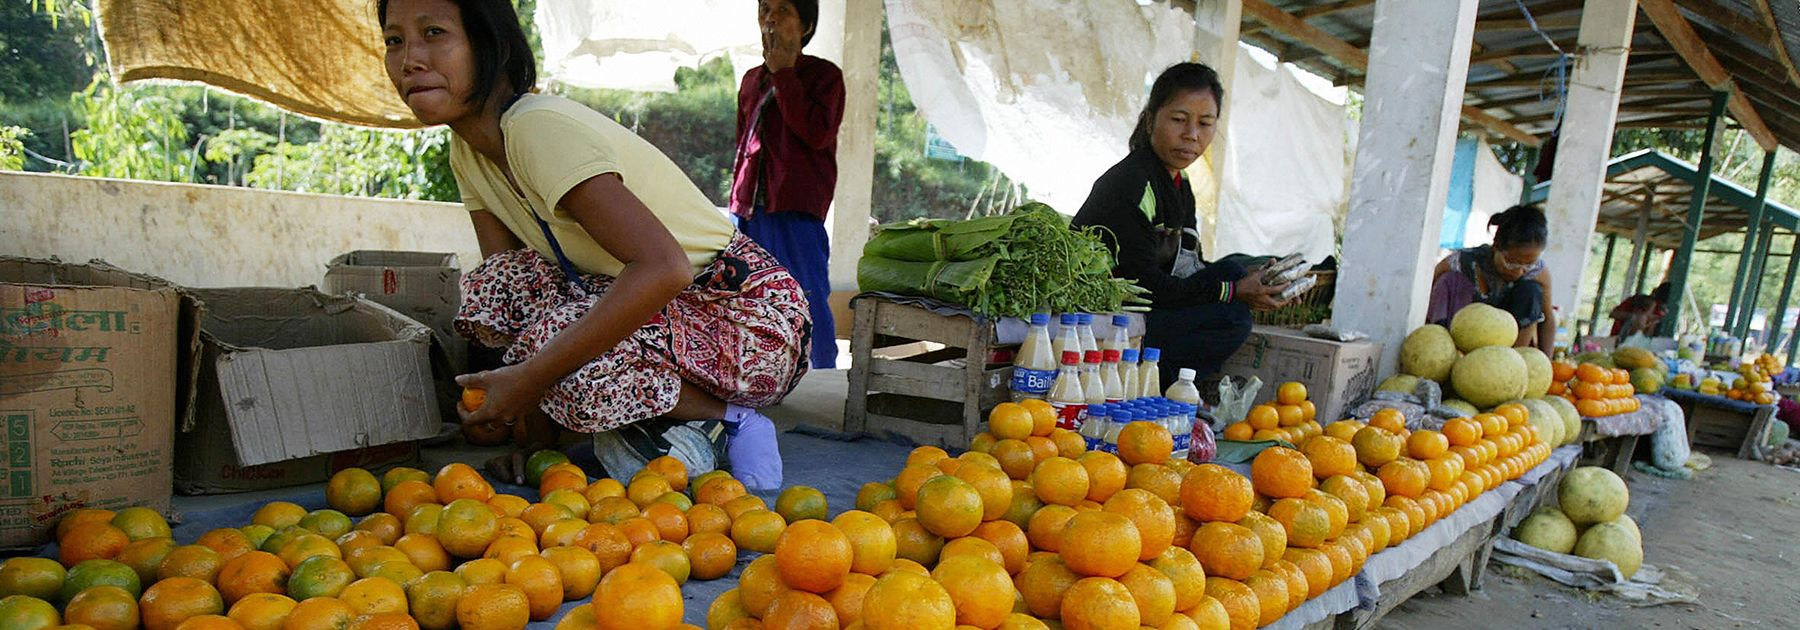 Mizo women sell fruit and vegetables at the roadside in Aizawl, capital of the north-eastern state of Mizoram. (DIPTENDU DUTTA/AFP/Getty Images)